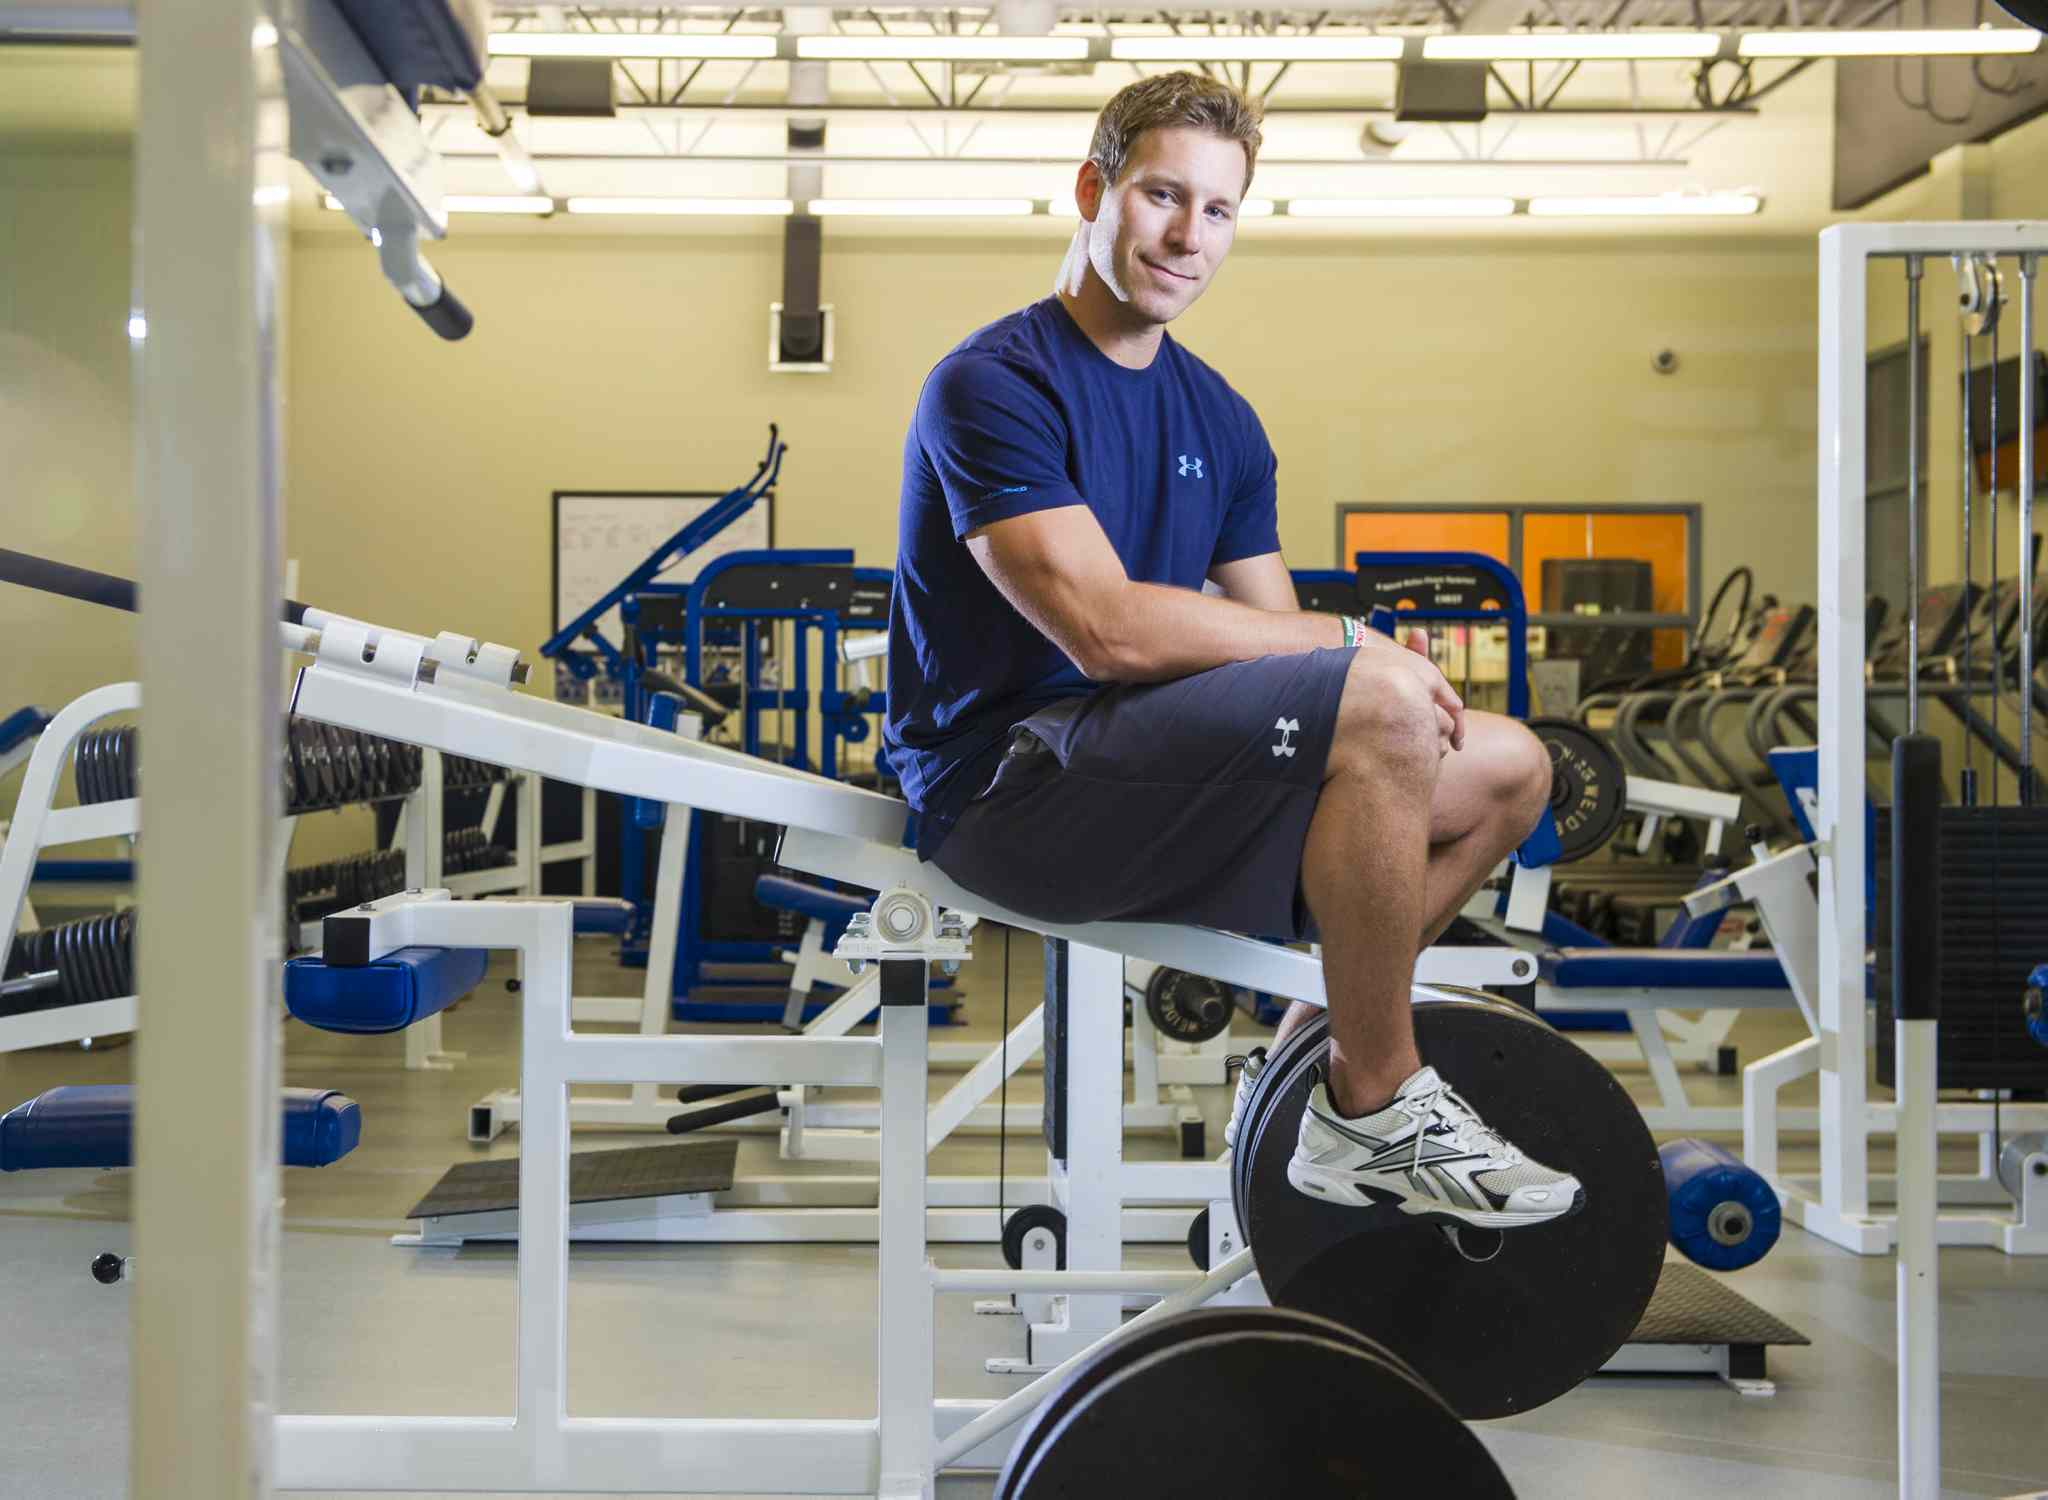 Ryan Dueck, in the Youth For Christ Centre's gym, is travelling to Germany to undergo surgery to repair an injury that has left him in constant pain and promises to get worse without treatment.